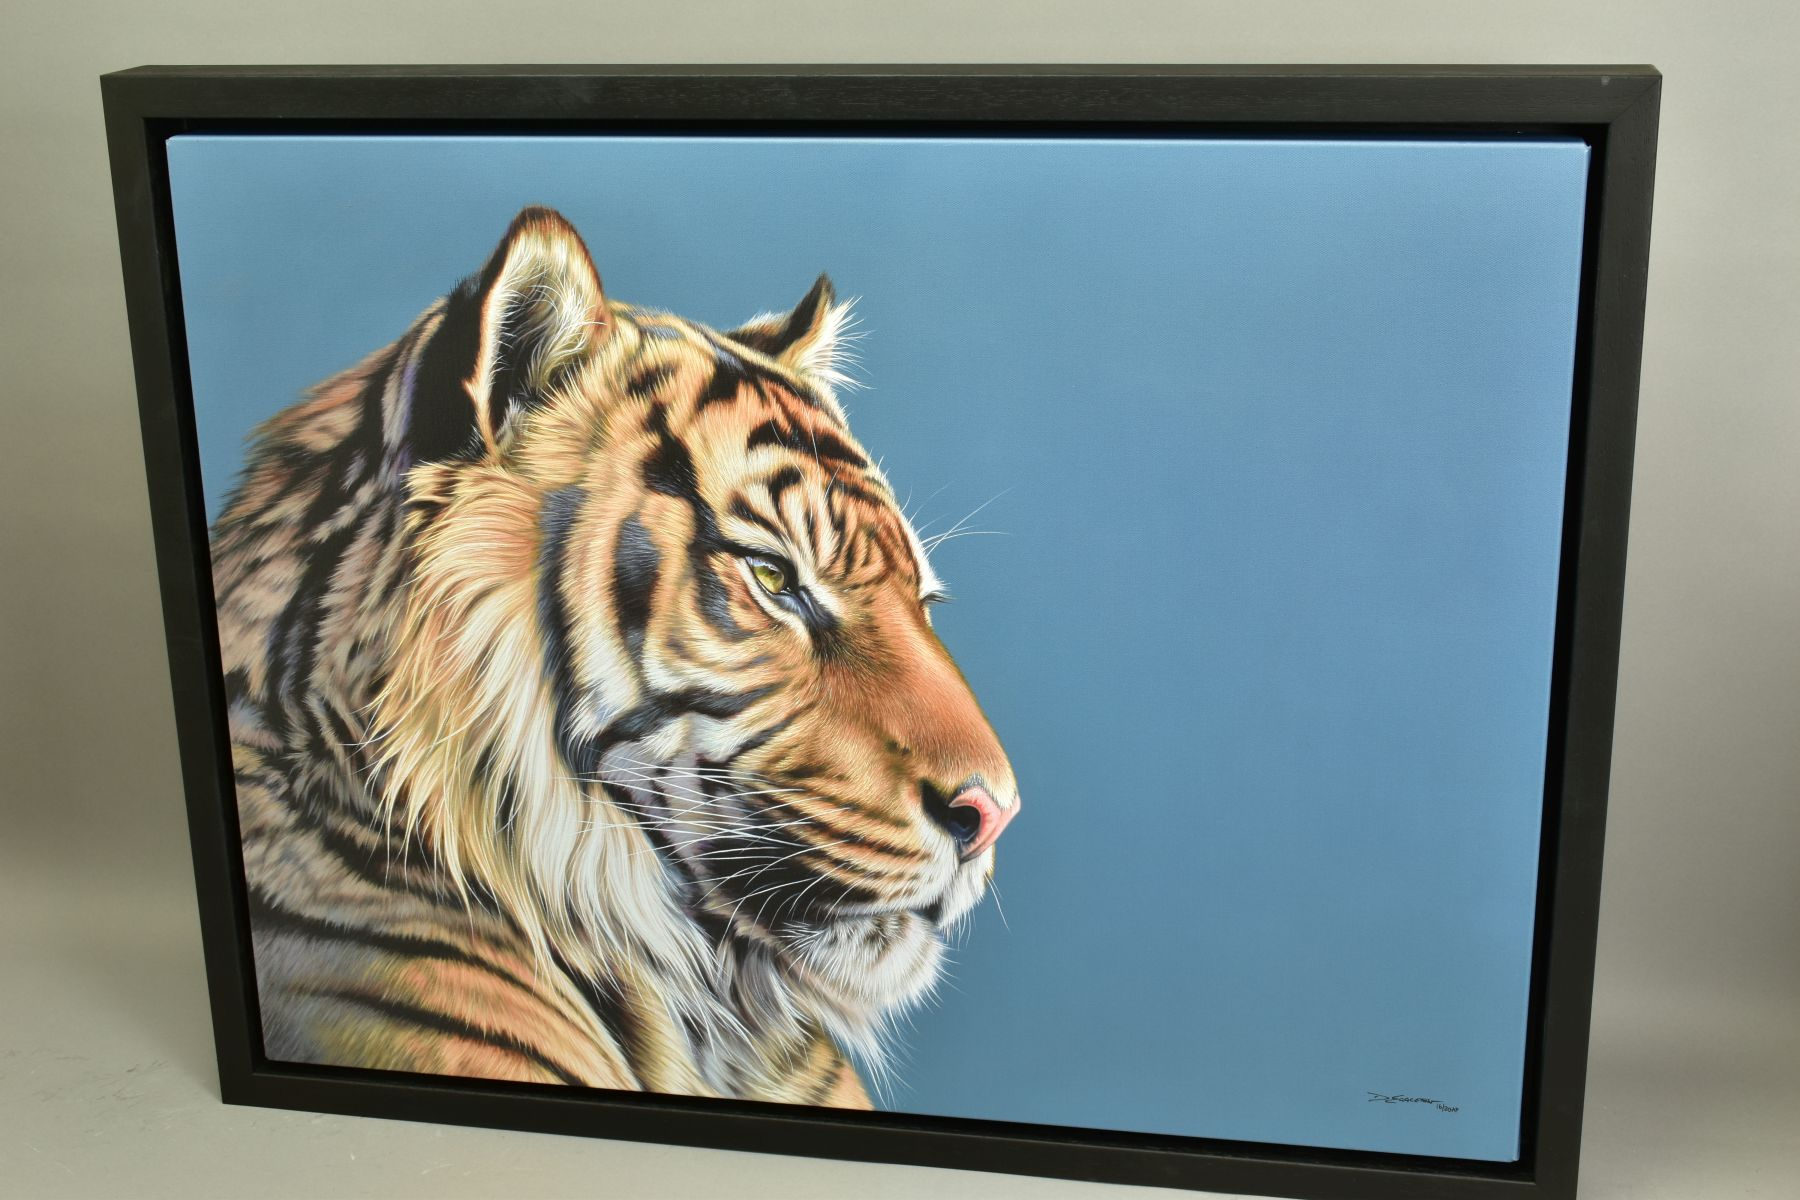 DARRYN EGGLETON (SOUTH AFRICA 1981), 'The Sentinel', an artist proof print of a Tiger, 16/20, signed - Image 5 of 6